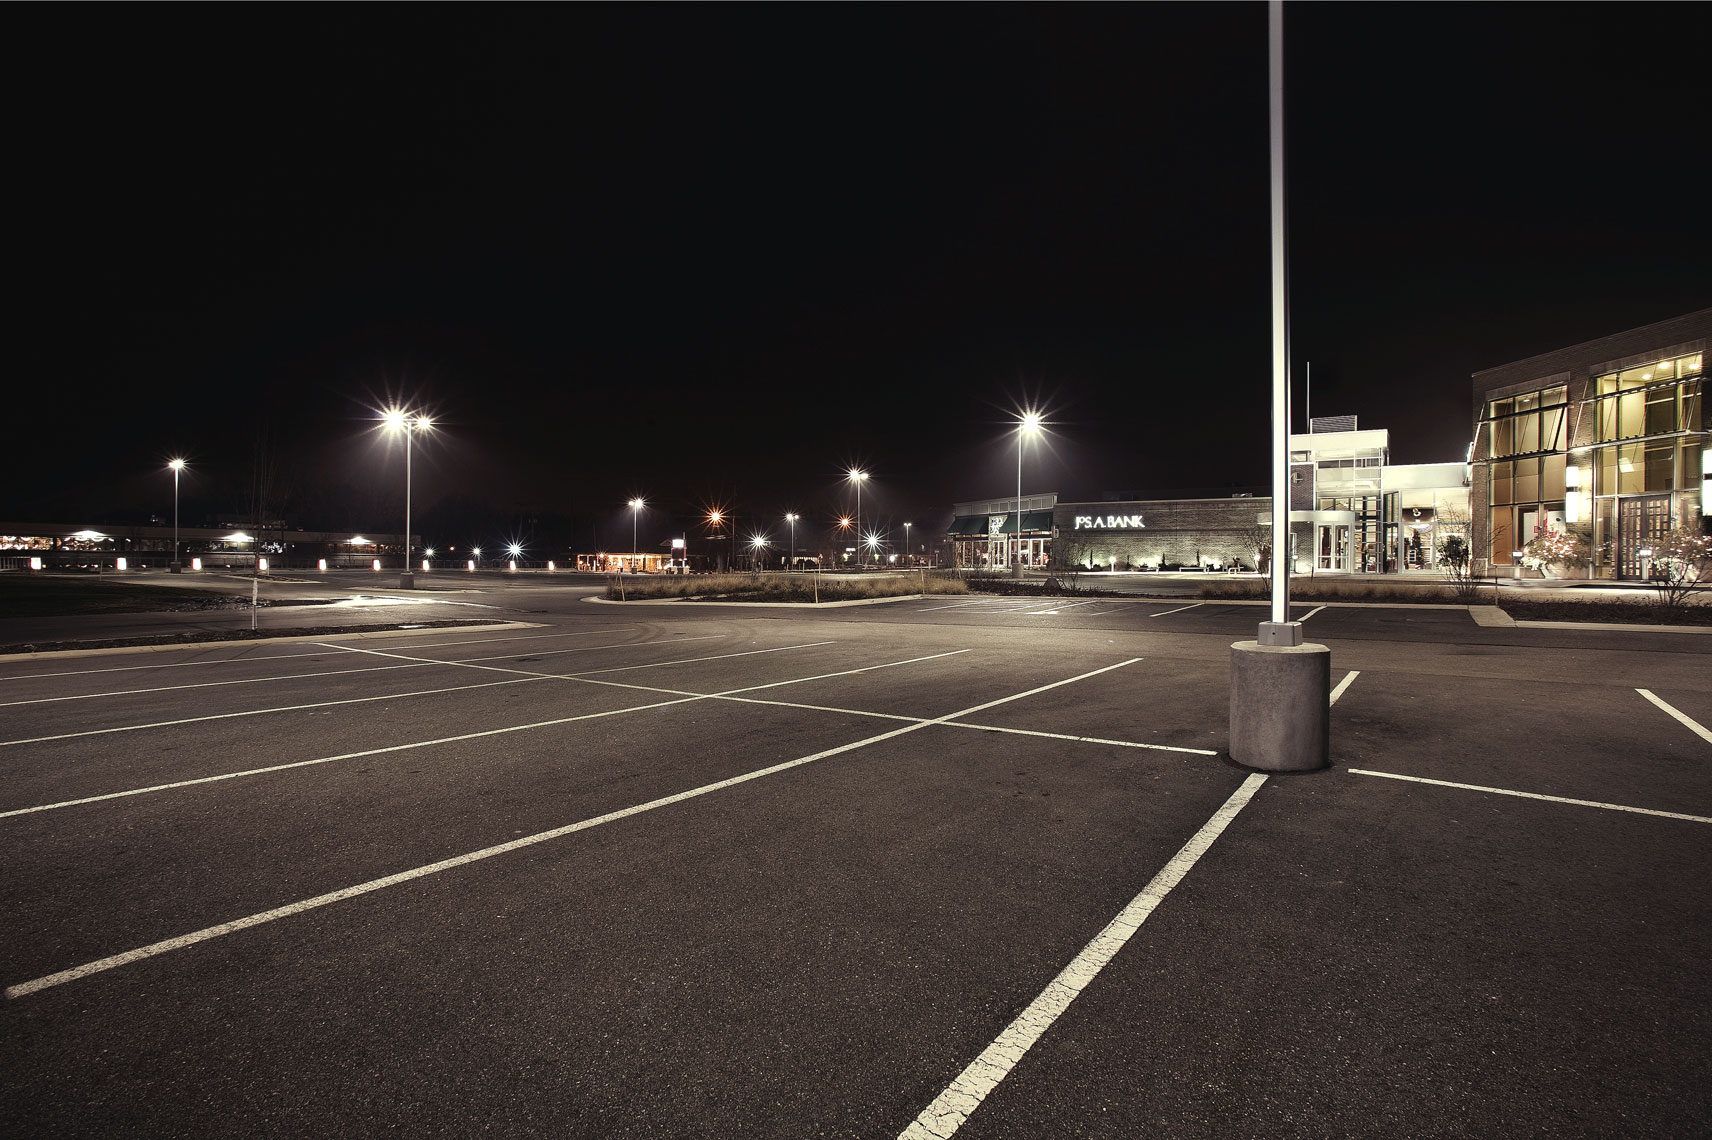 parking-lot-at-night